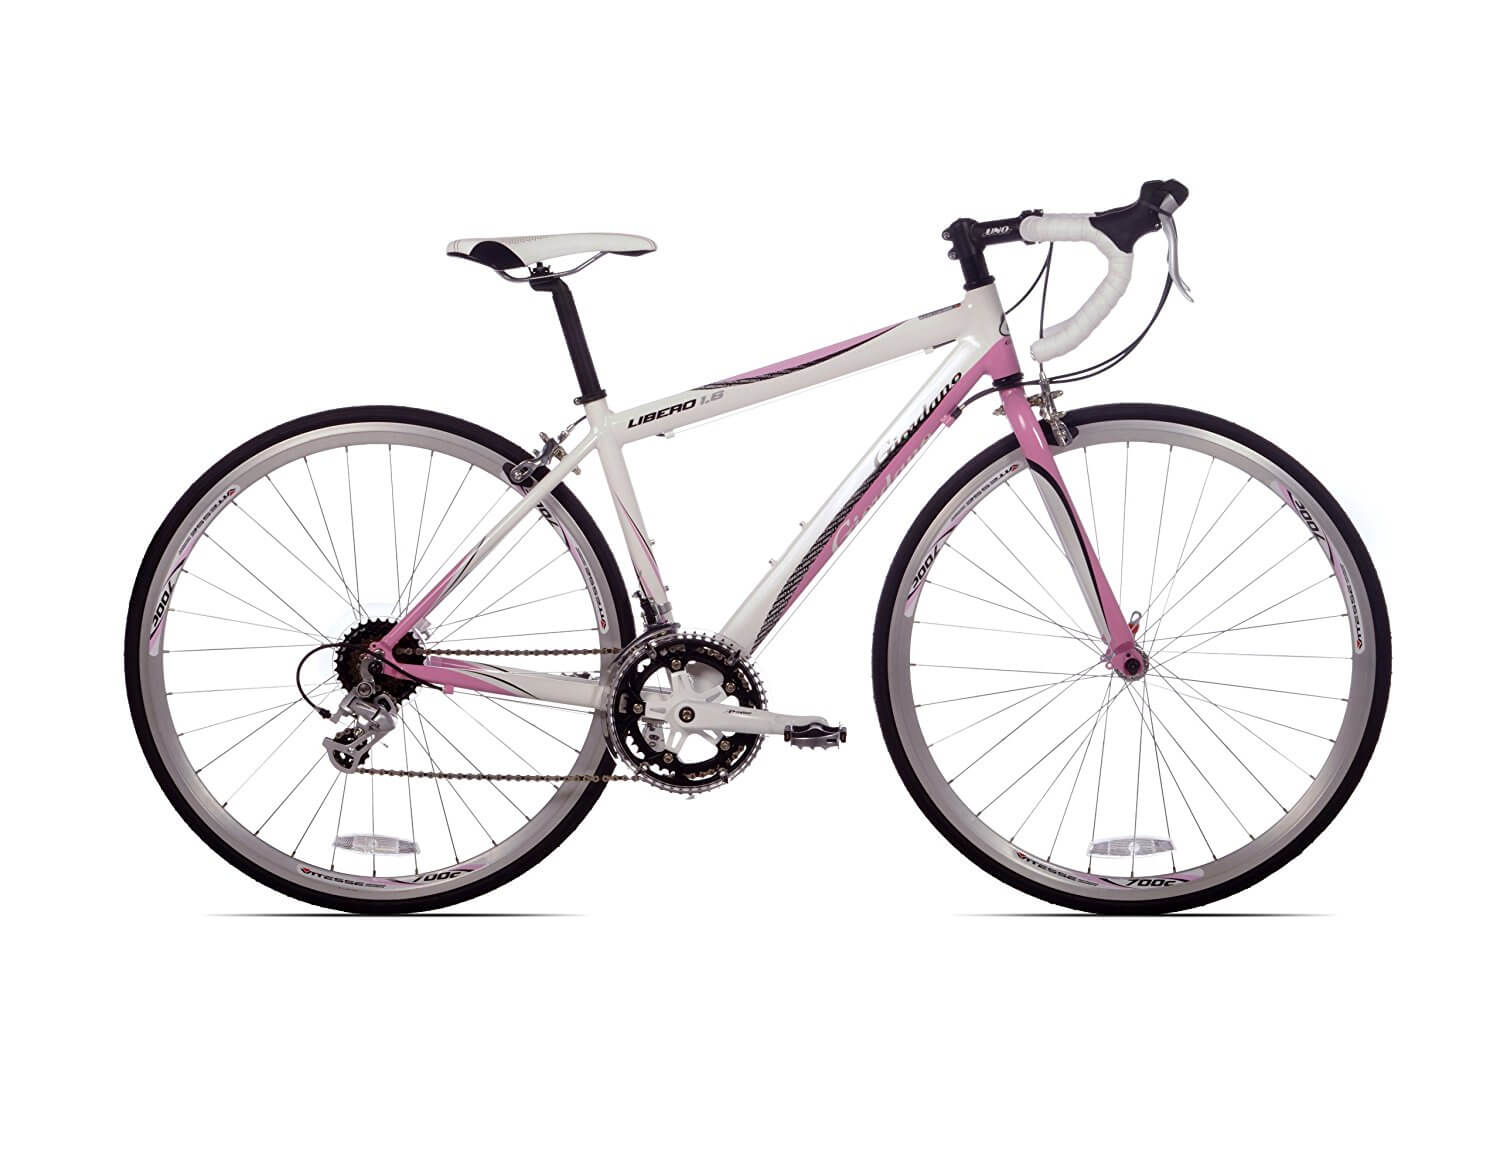 5 Best Bikes For Women Review in 2018